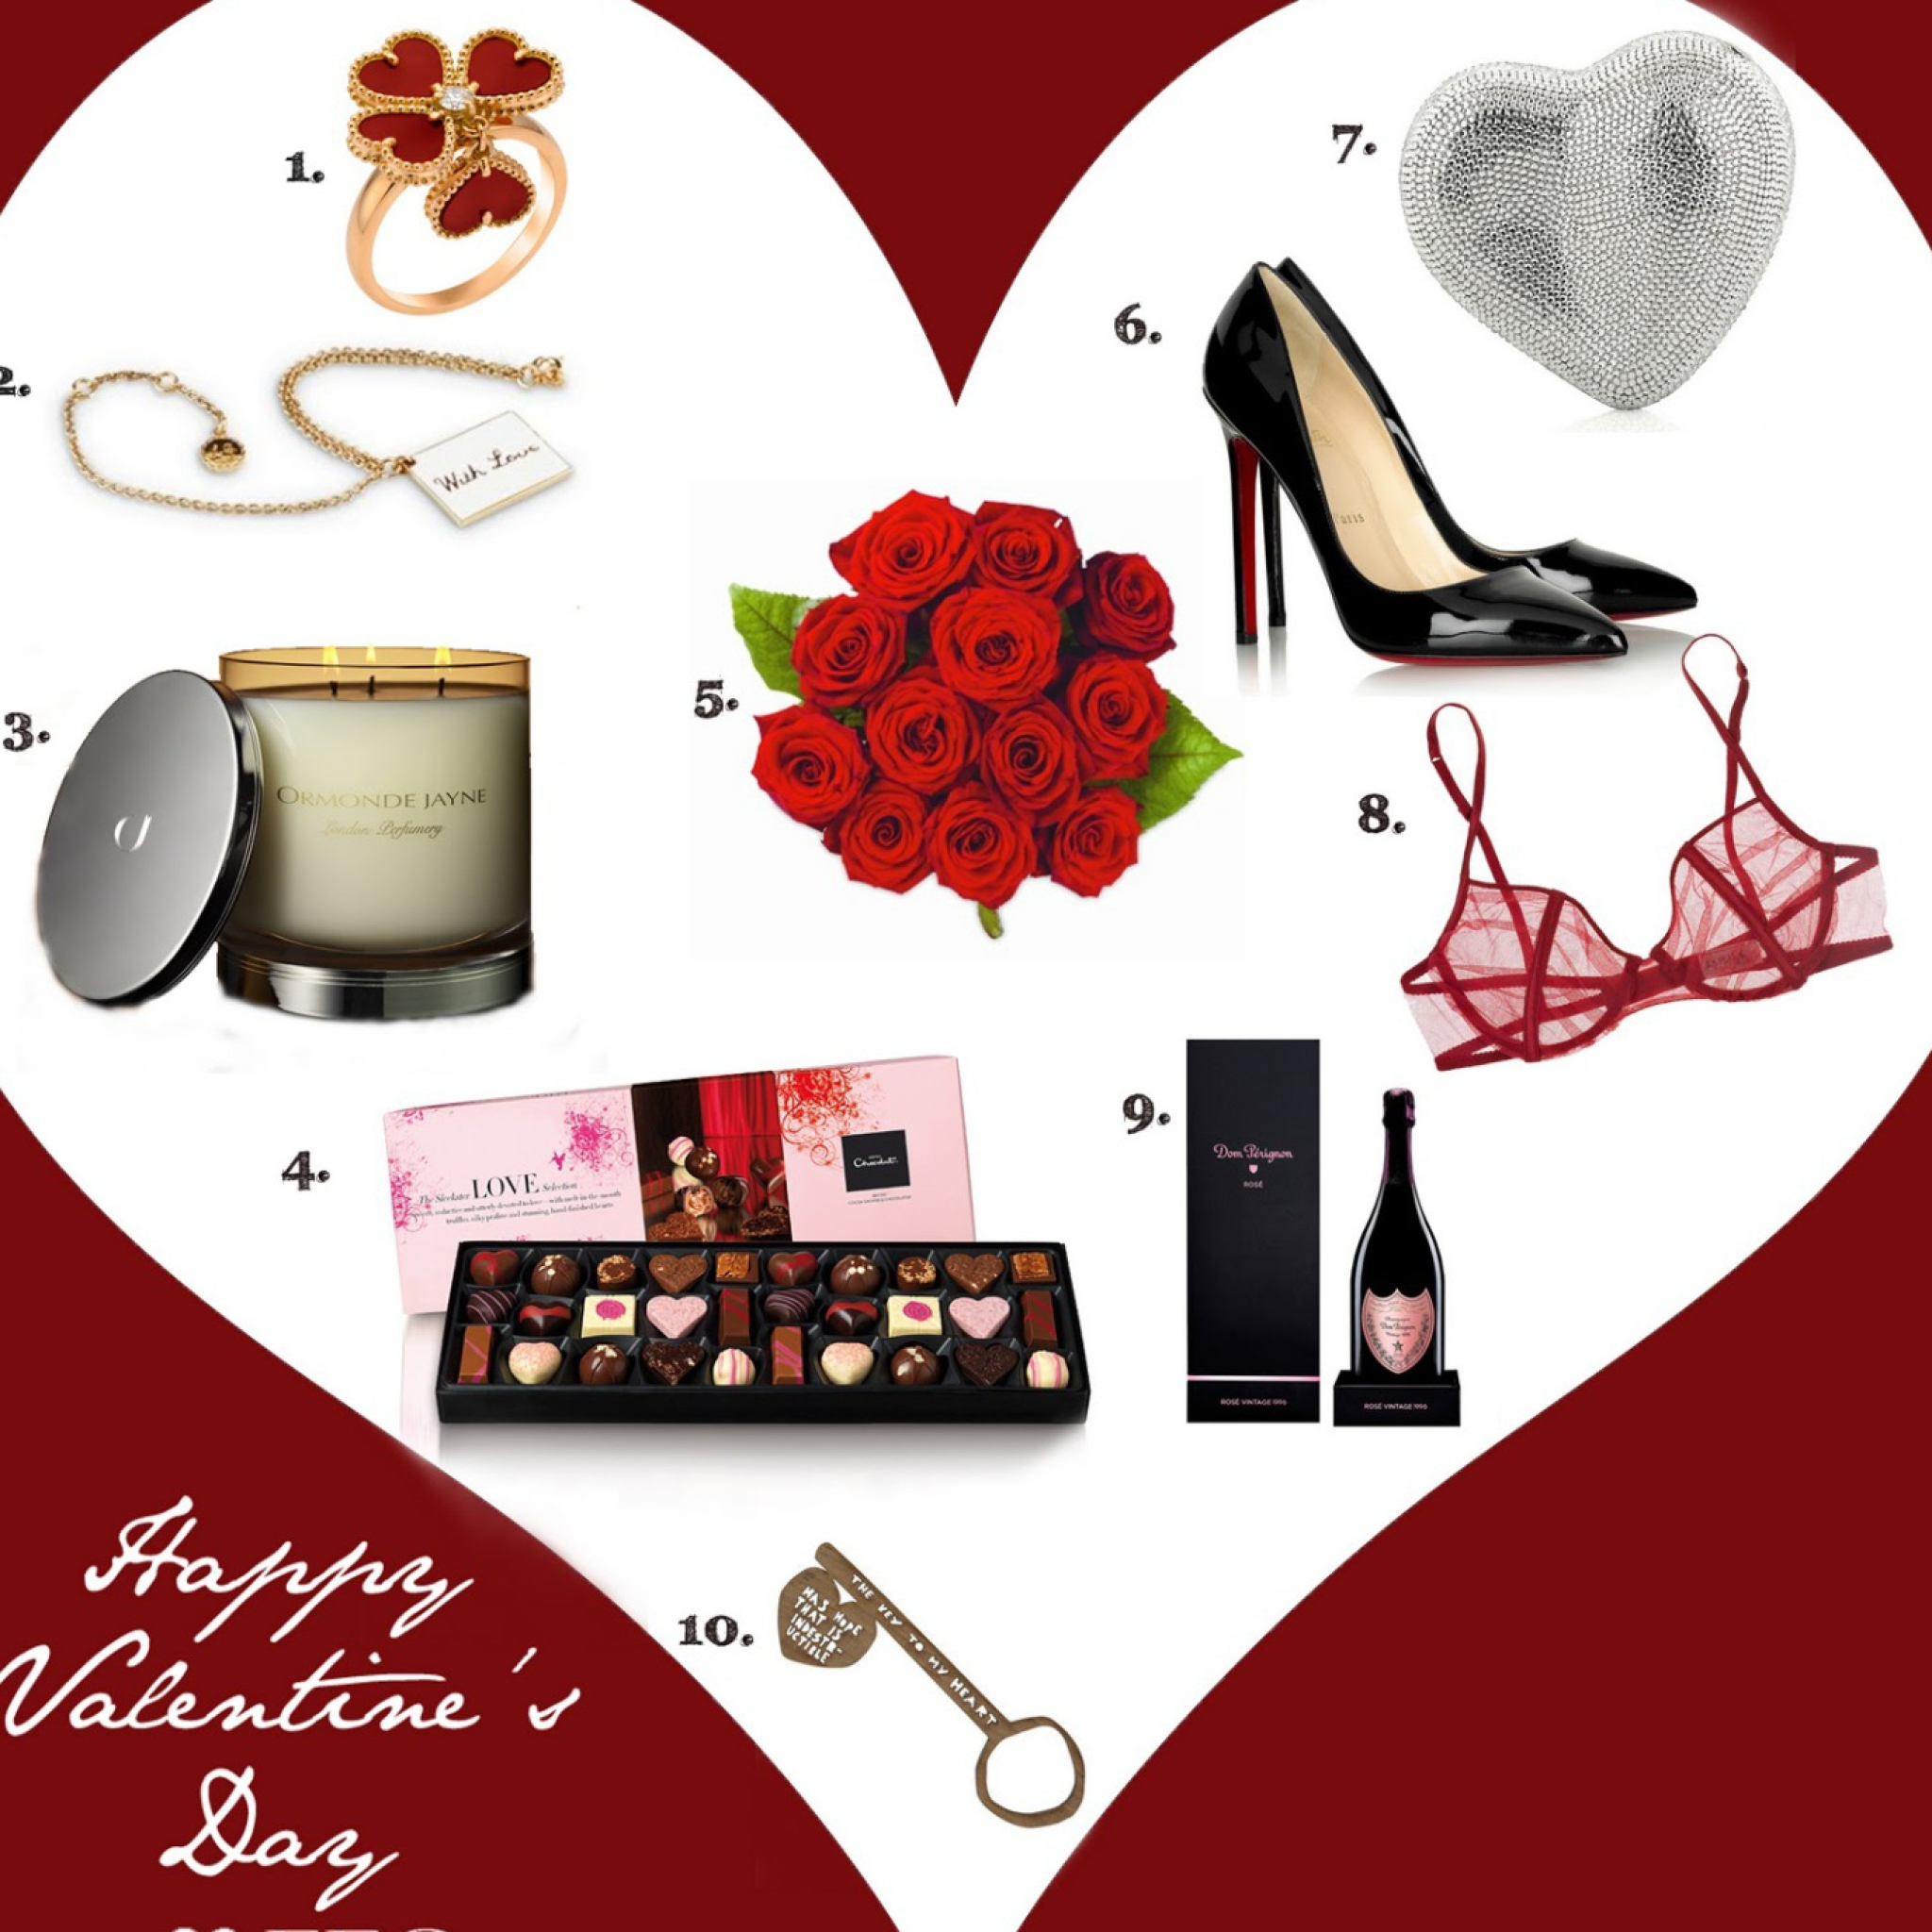 Valentines Day Gifts wallpaper 2048x2048